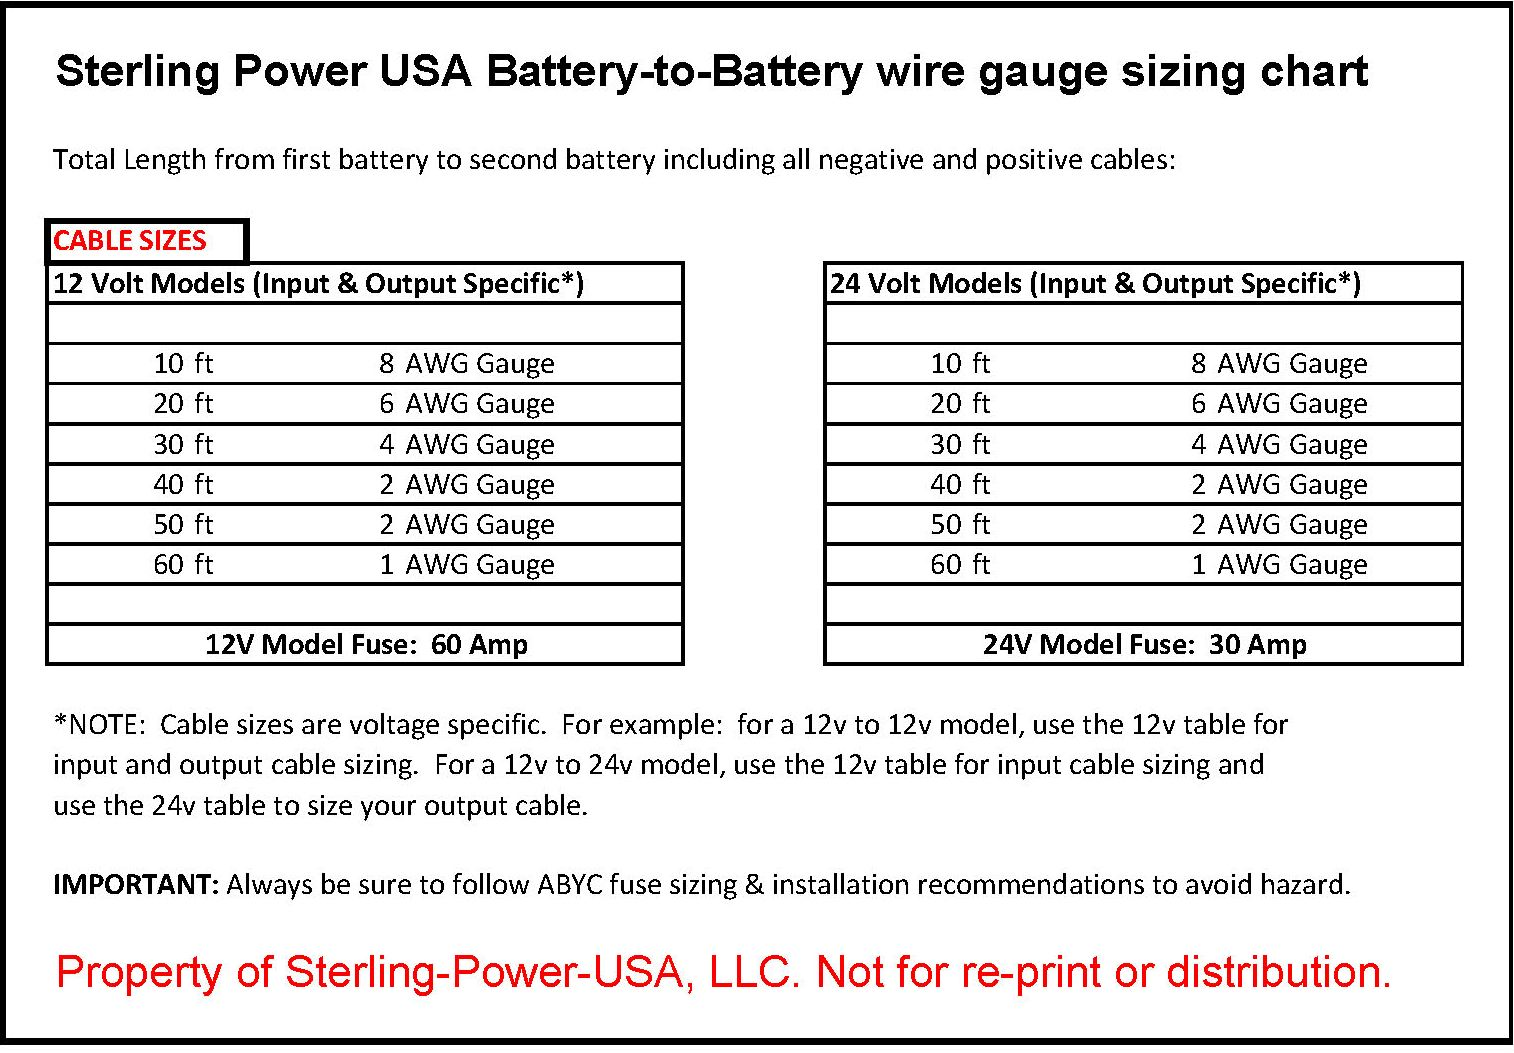 wiring diagrams literature for pro charge ultra marine battery rh sterling power usa com